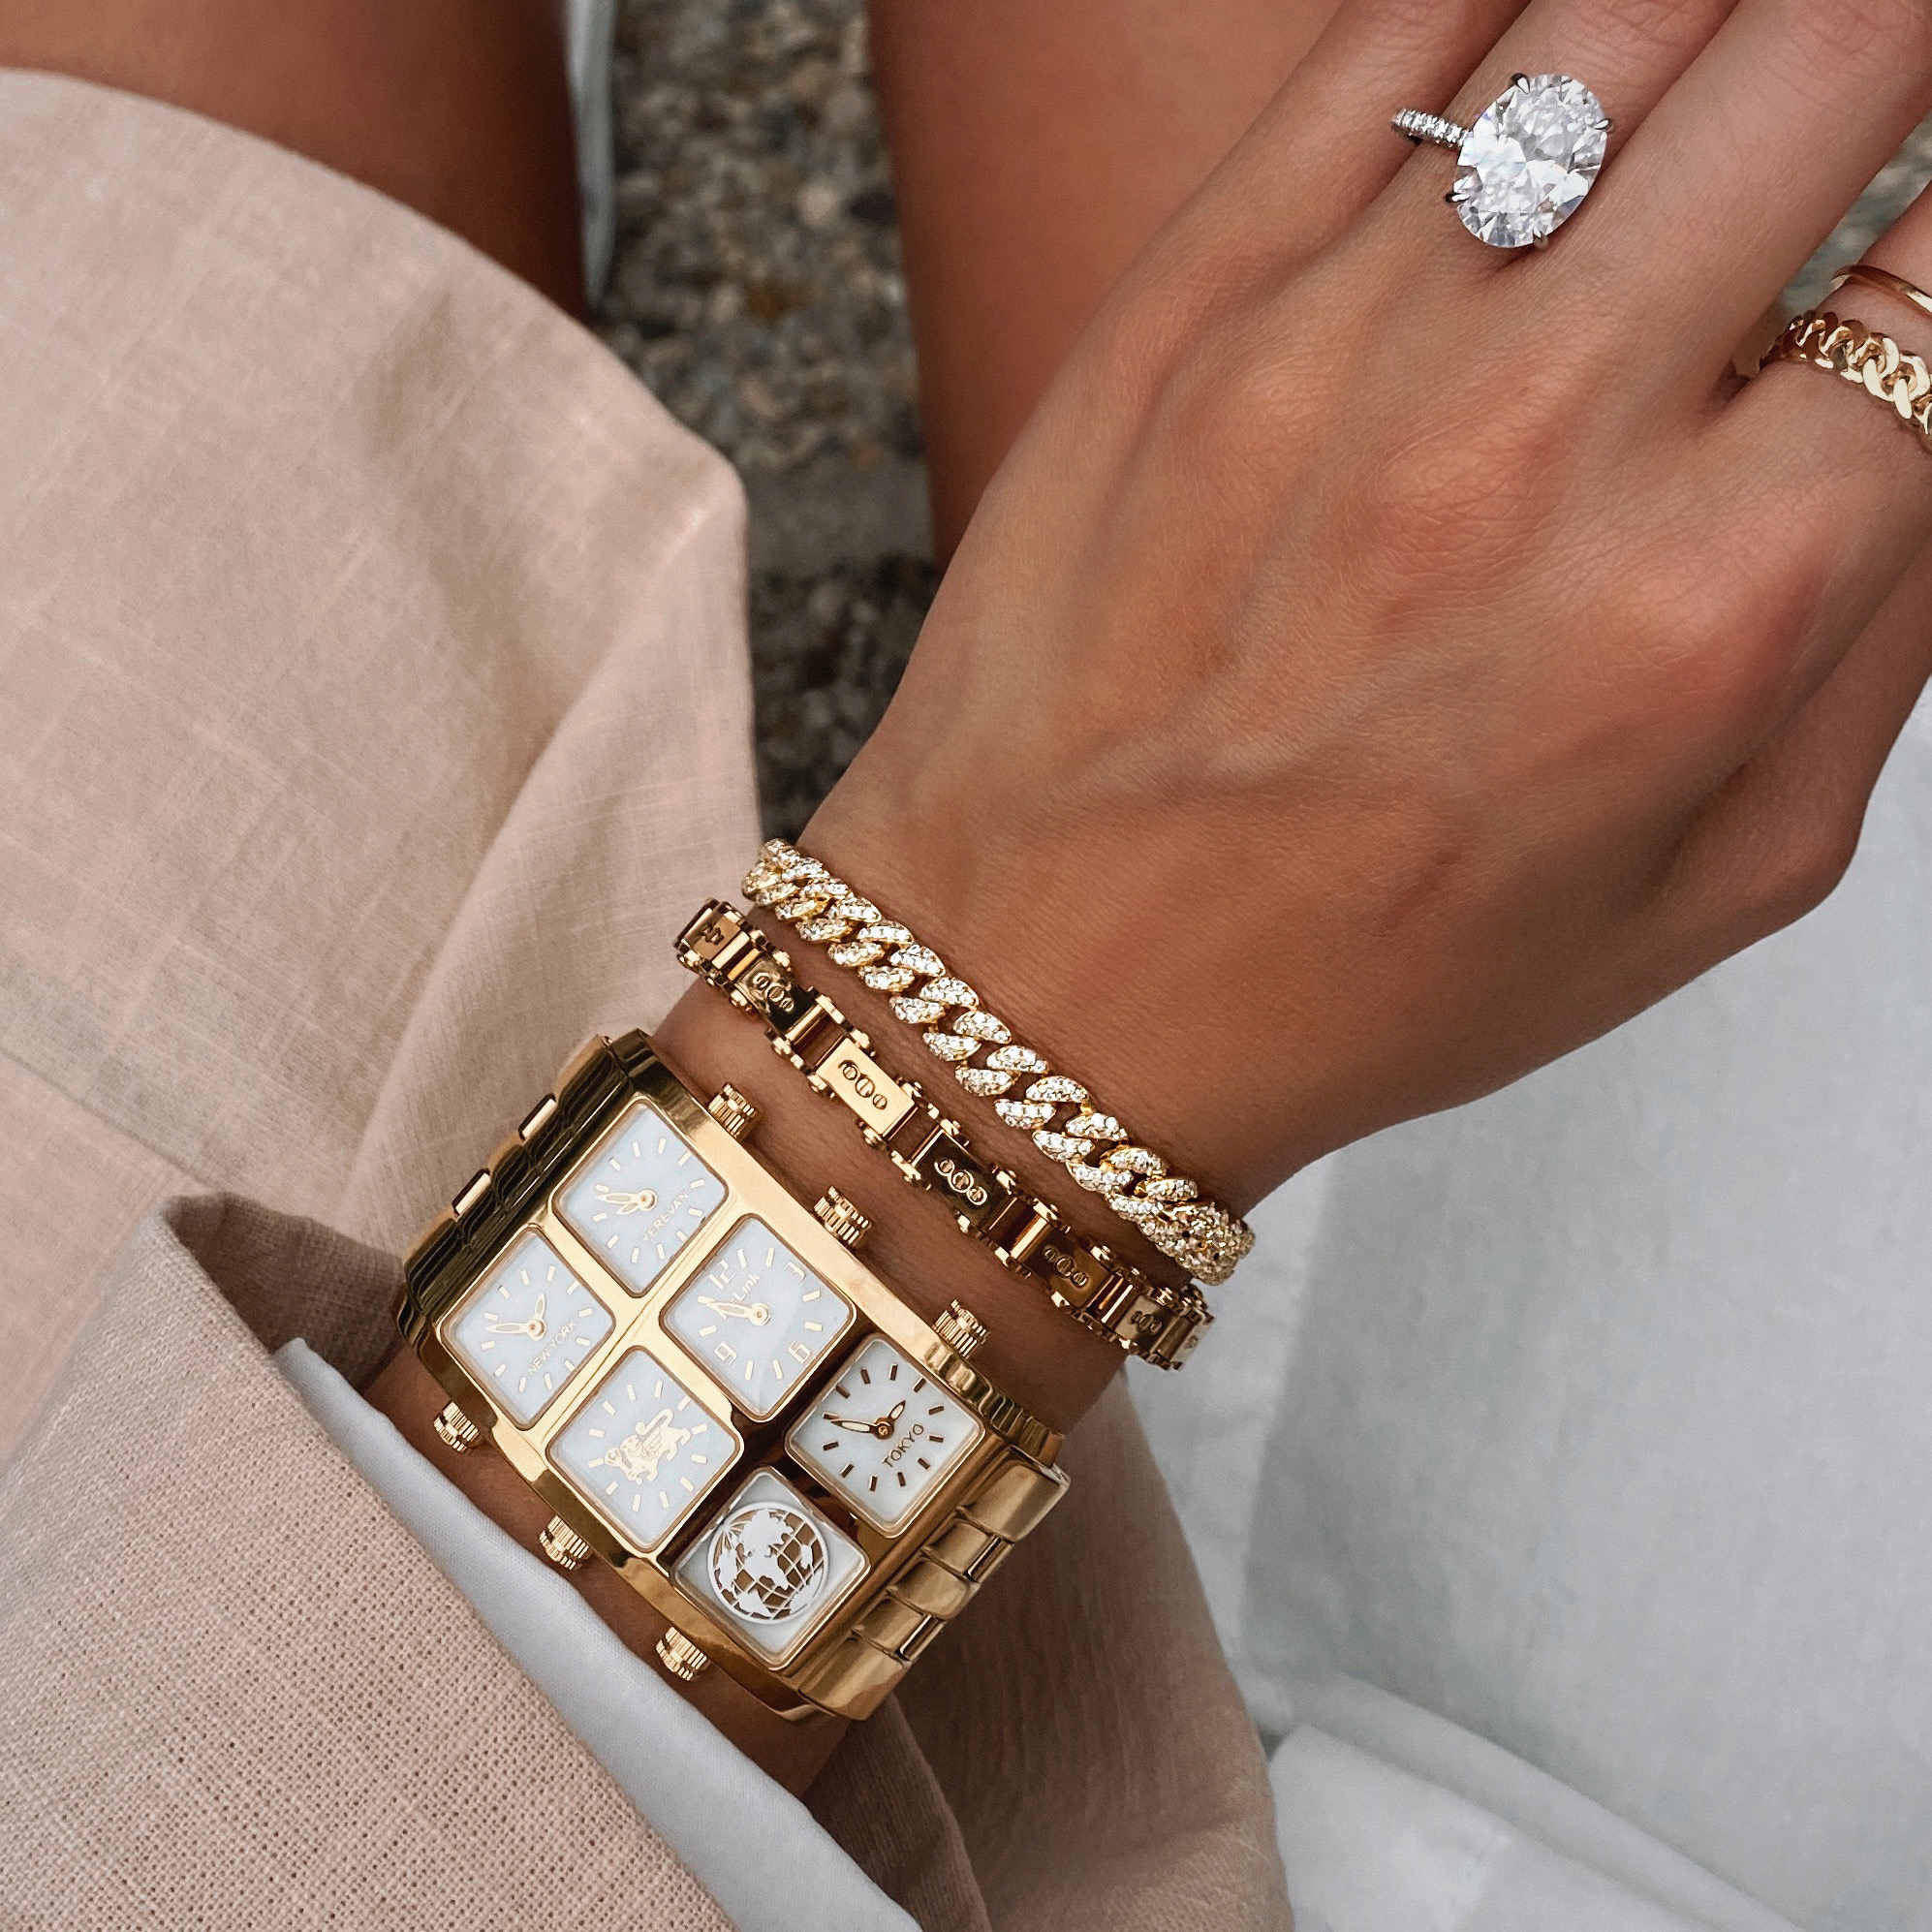 Close up of Mai 40mm Multi-Time Zone Watch on woman's wrist